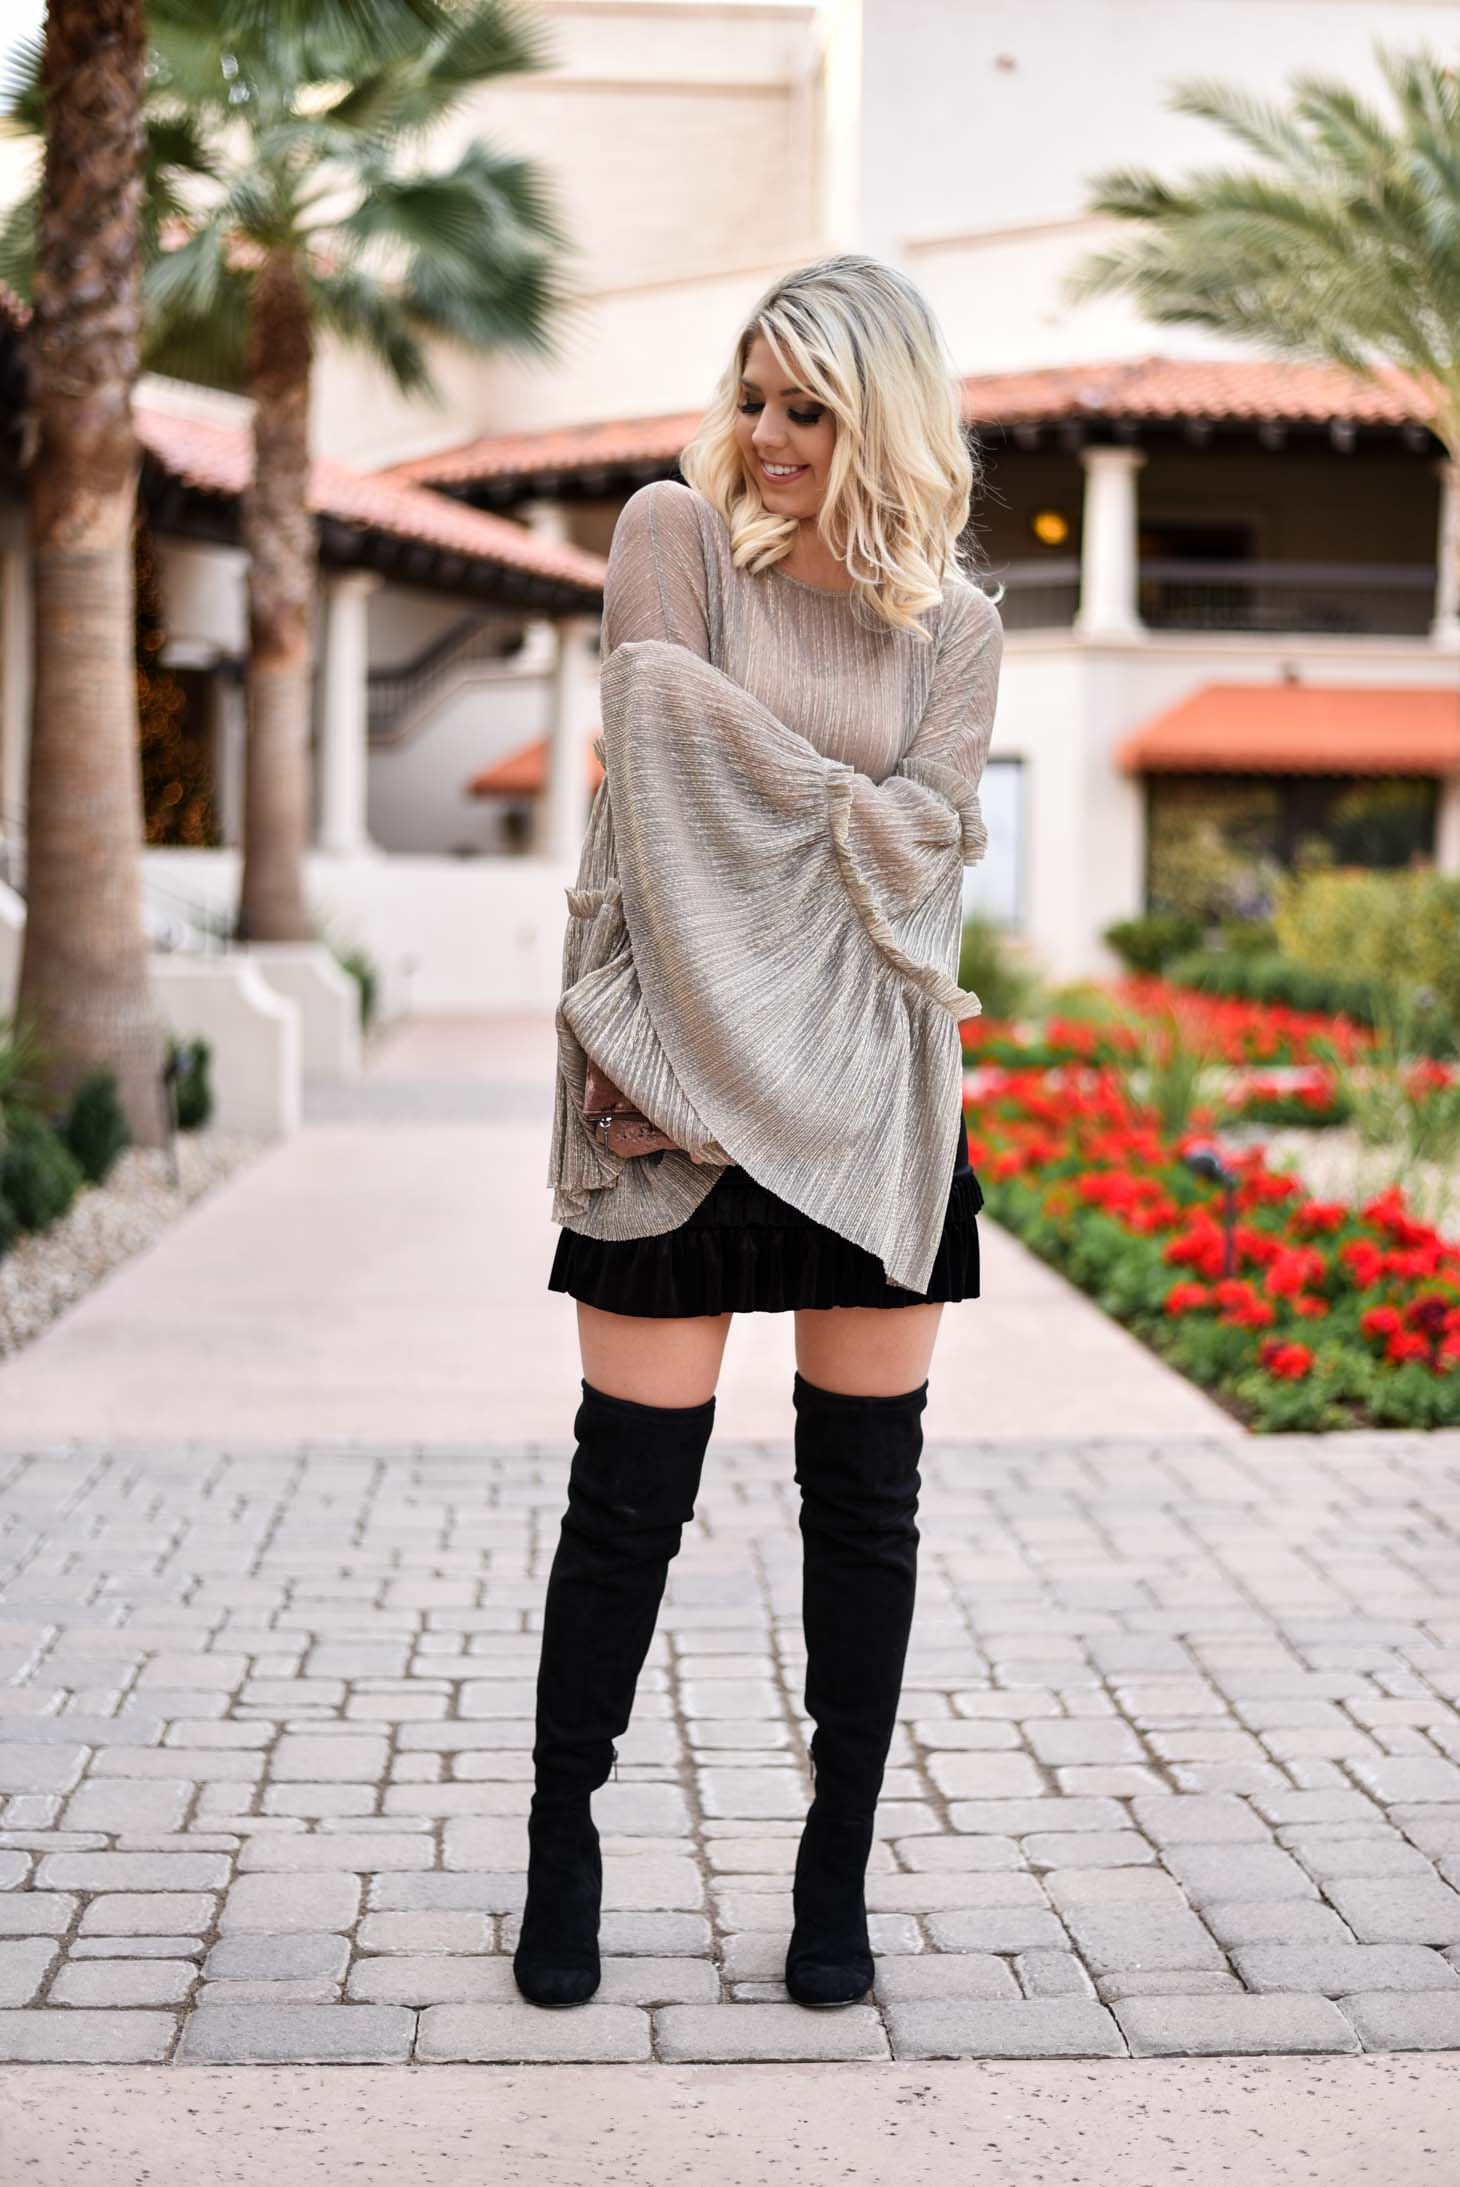 Erin Elizabeth of Wink and a Twirl in New Years Eve Look